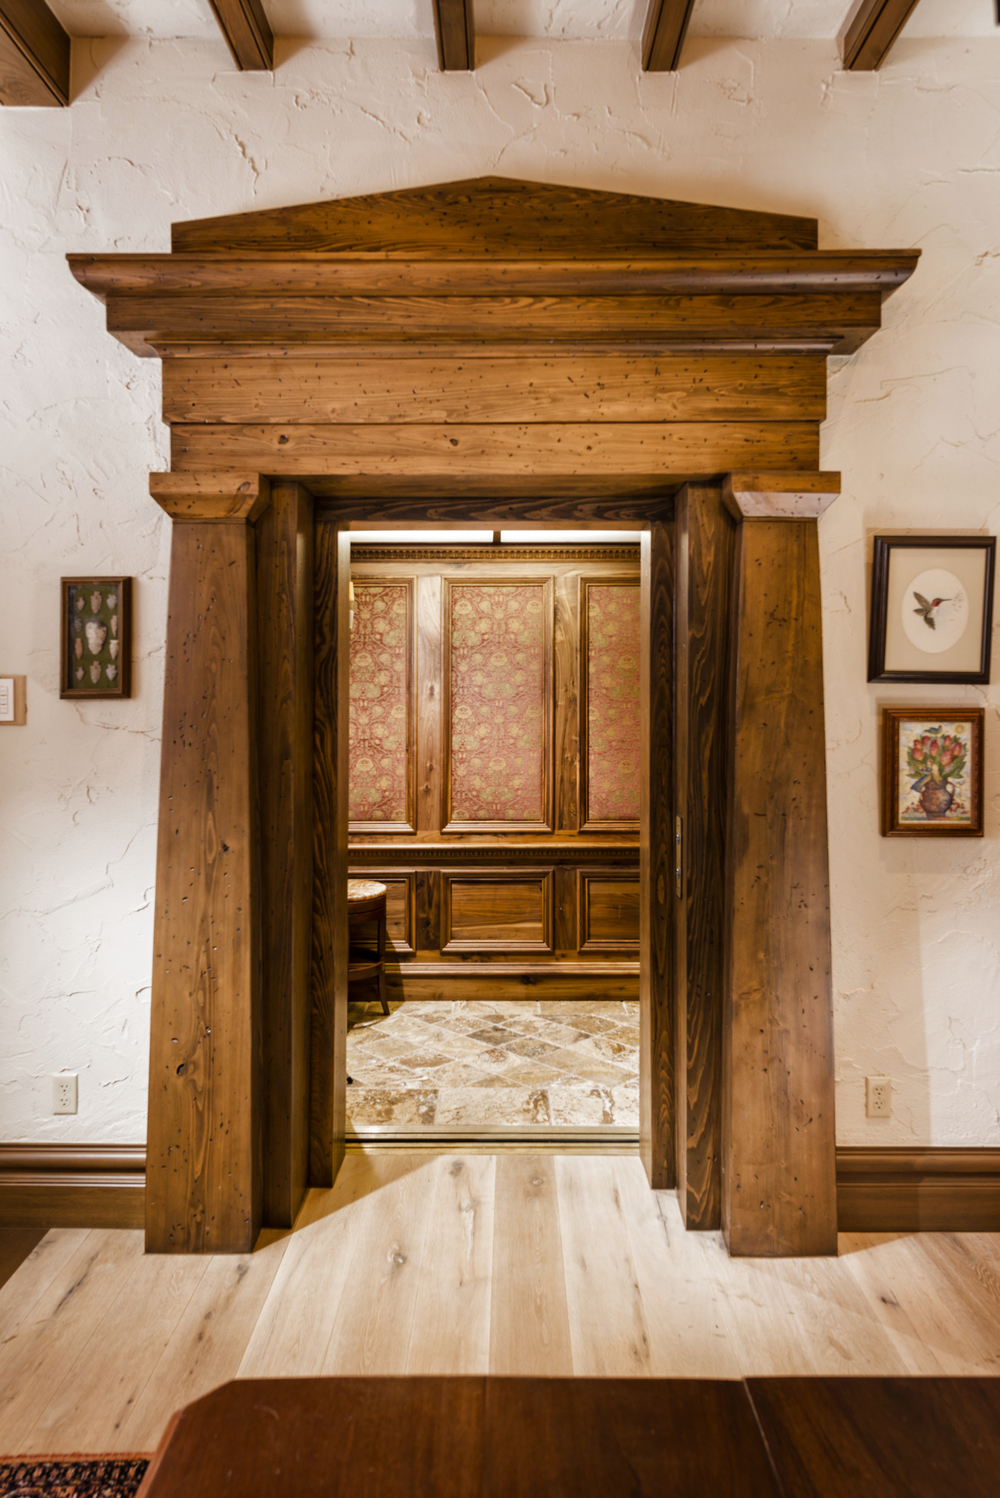 The map room elevator door. Elevator interior detailed in walnut.